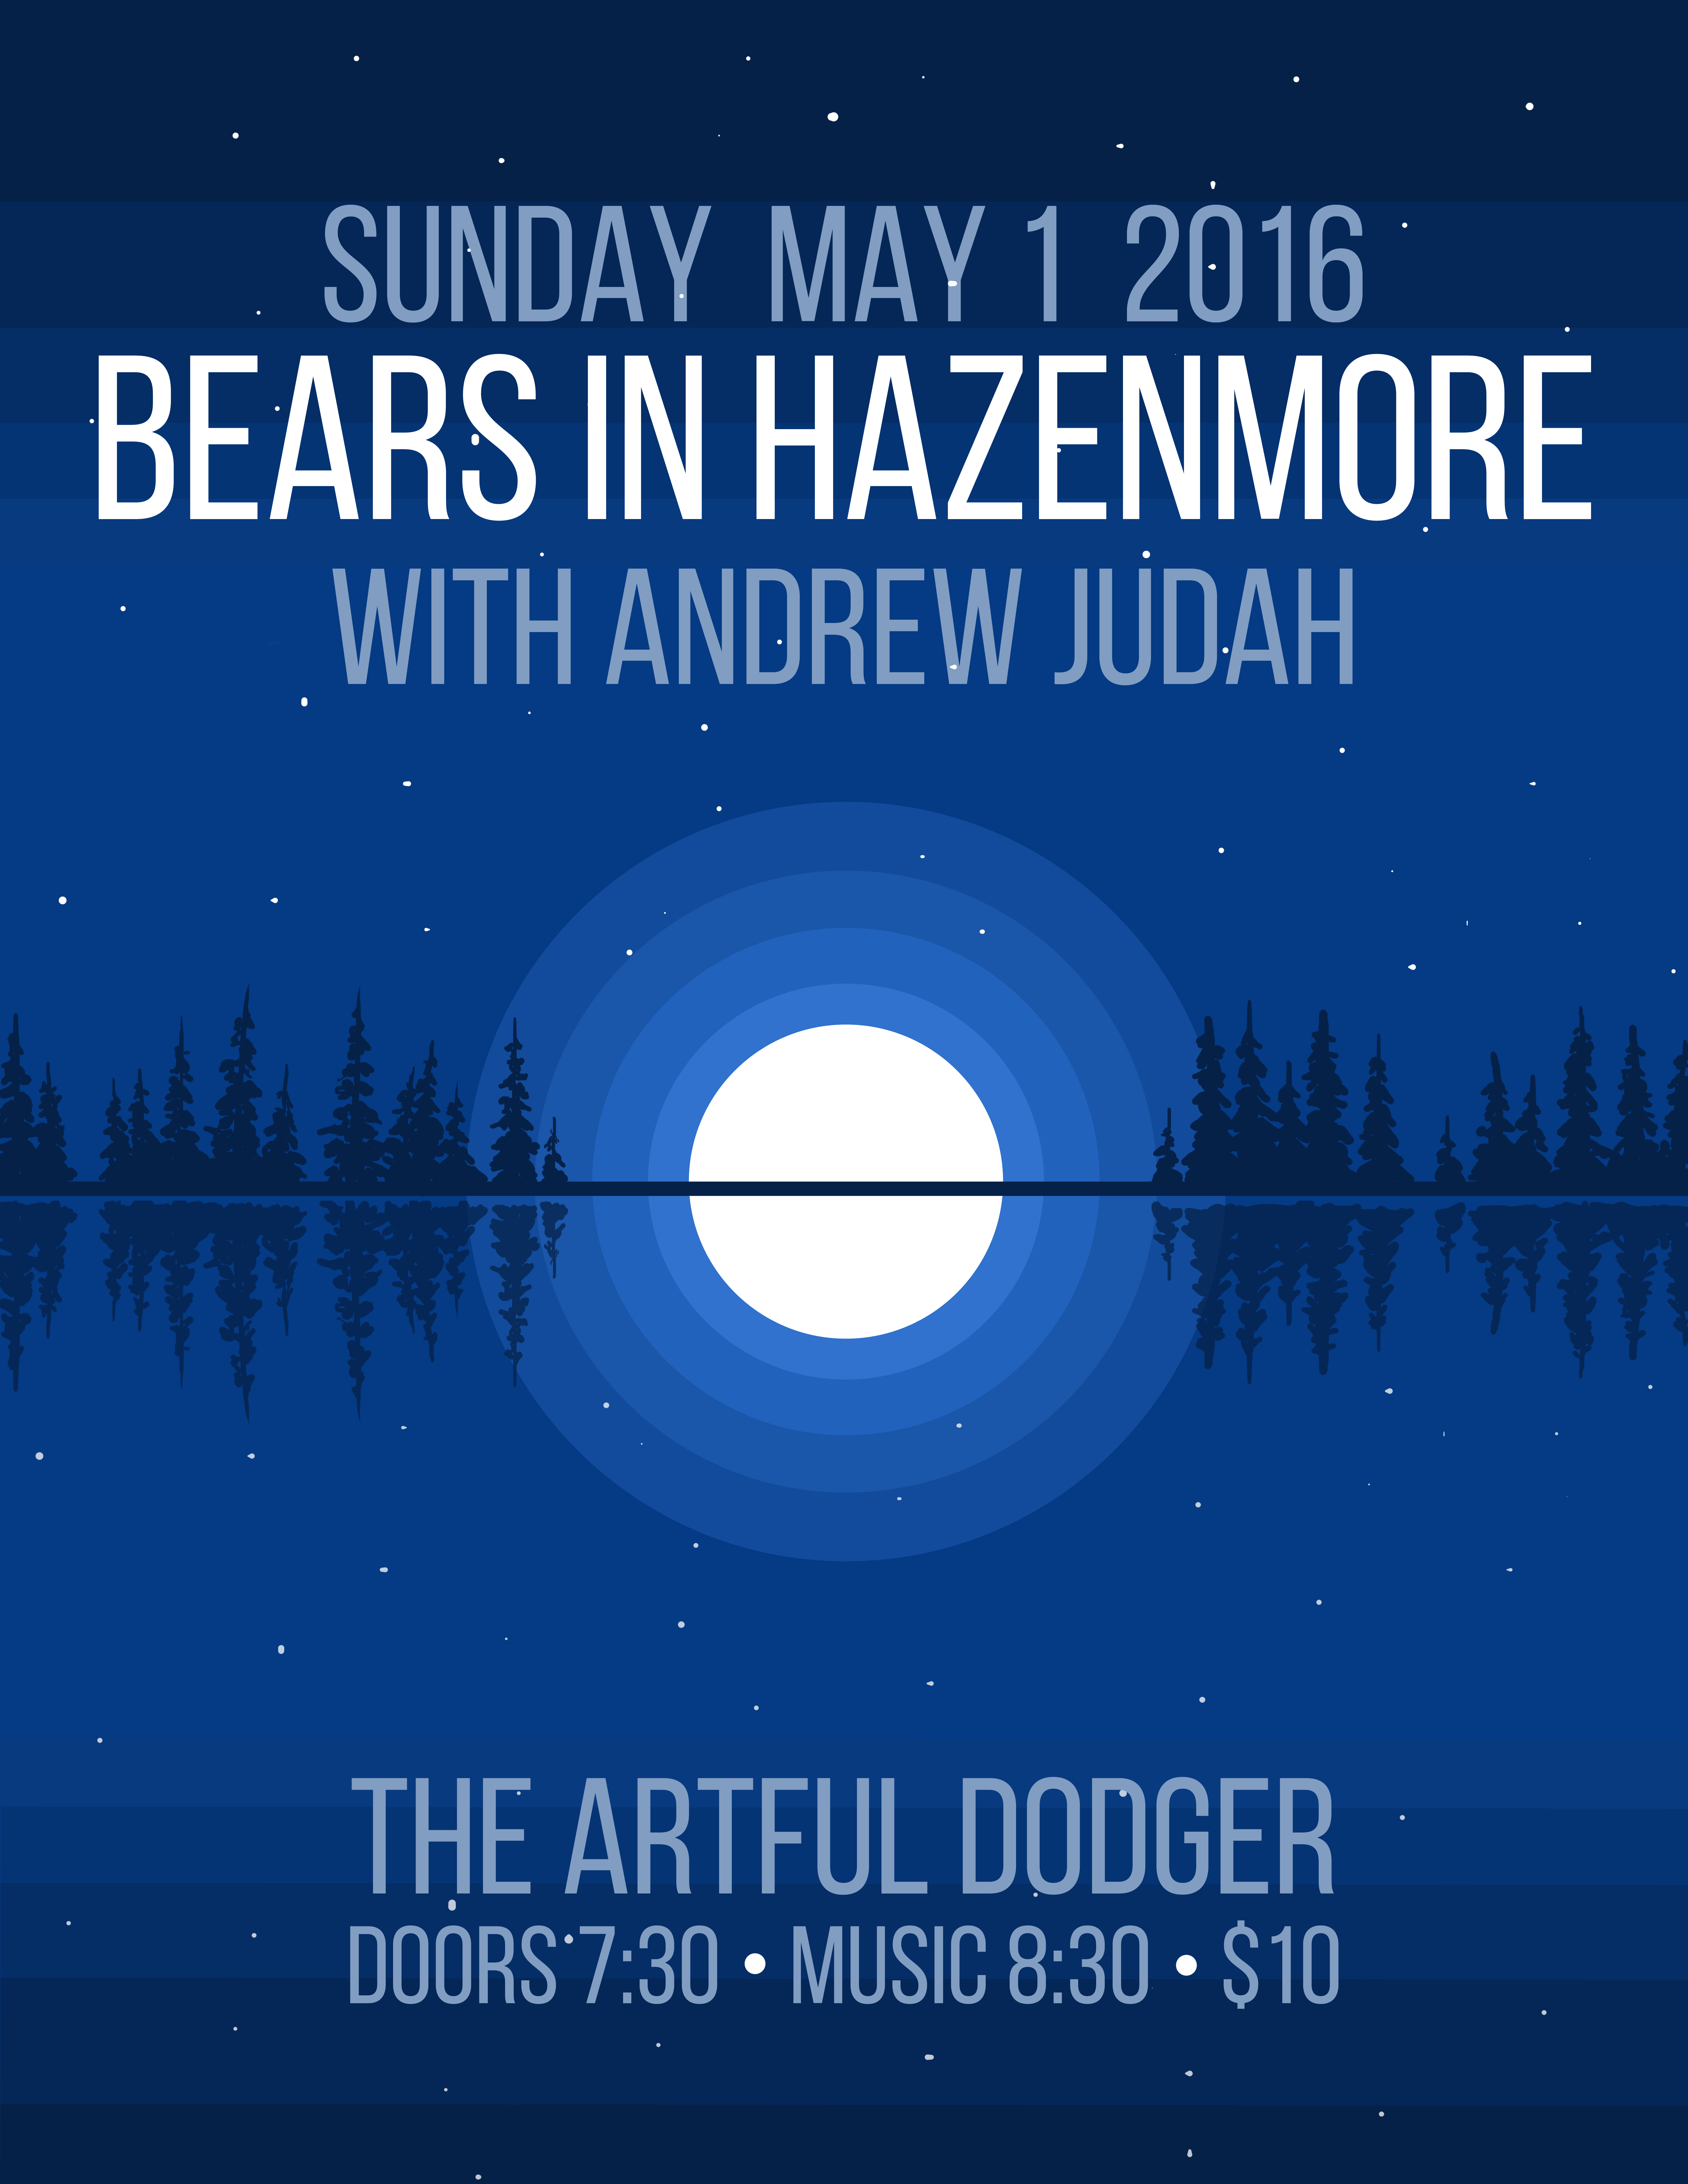 Bears in Hazenmore Poster, May 2016